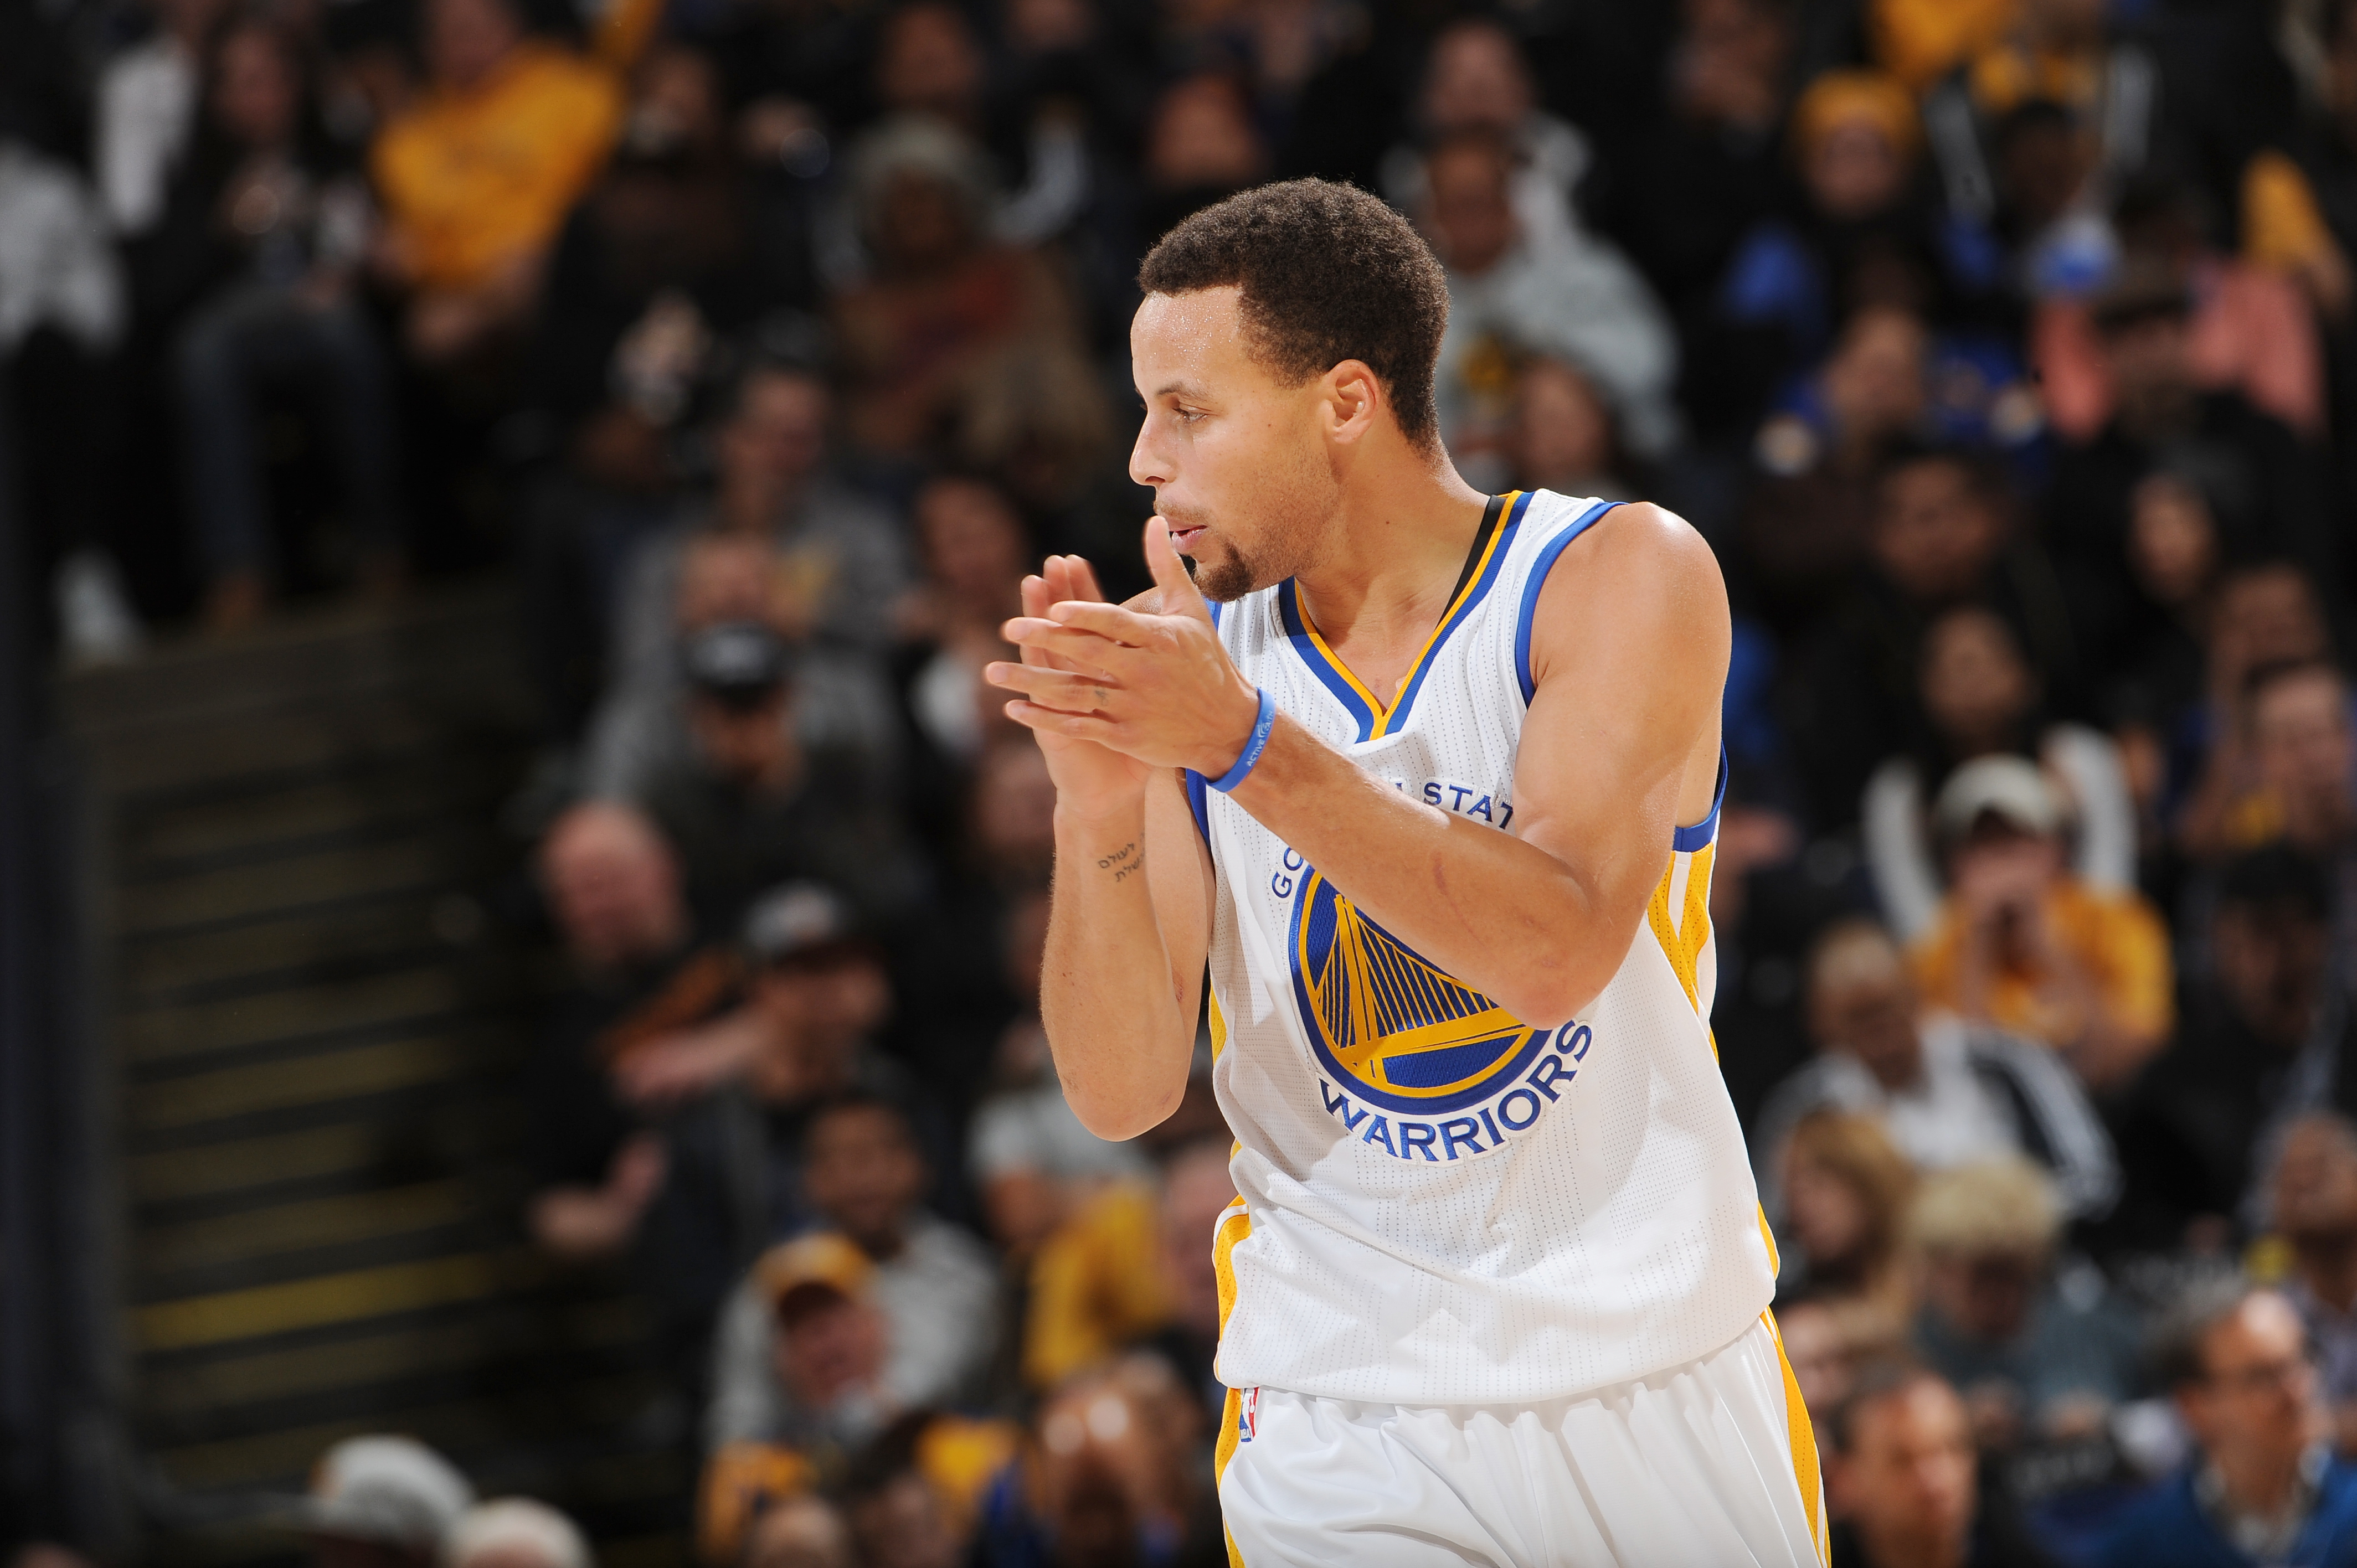 OAKLAND, CA - NOVEMBER 9:  Stephen Curry #30 of the Golden State Warriors celebrates during the game against the Detroit Pistons on November 9, 2015 at ORACLE Arena in Oakland, California. (Photo by Noah Graham/NBAE via Getty Images)